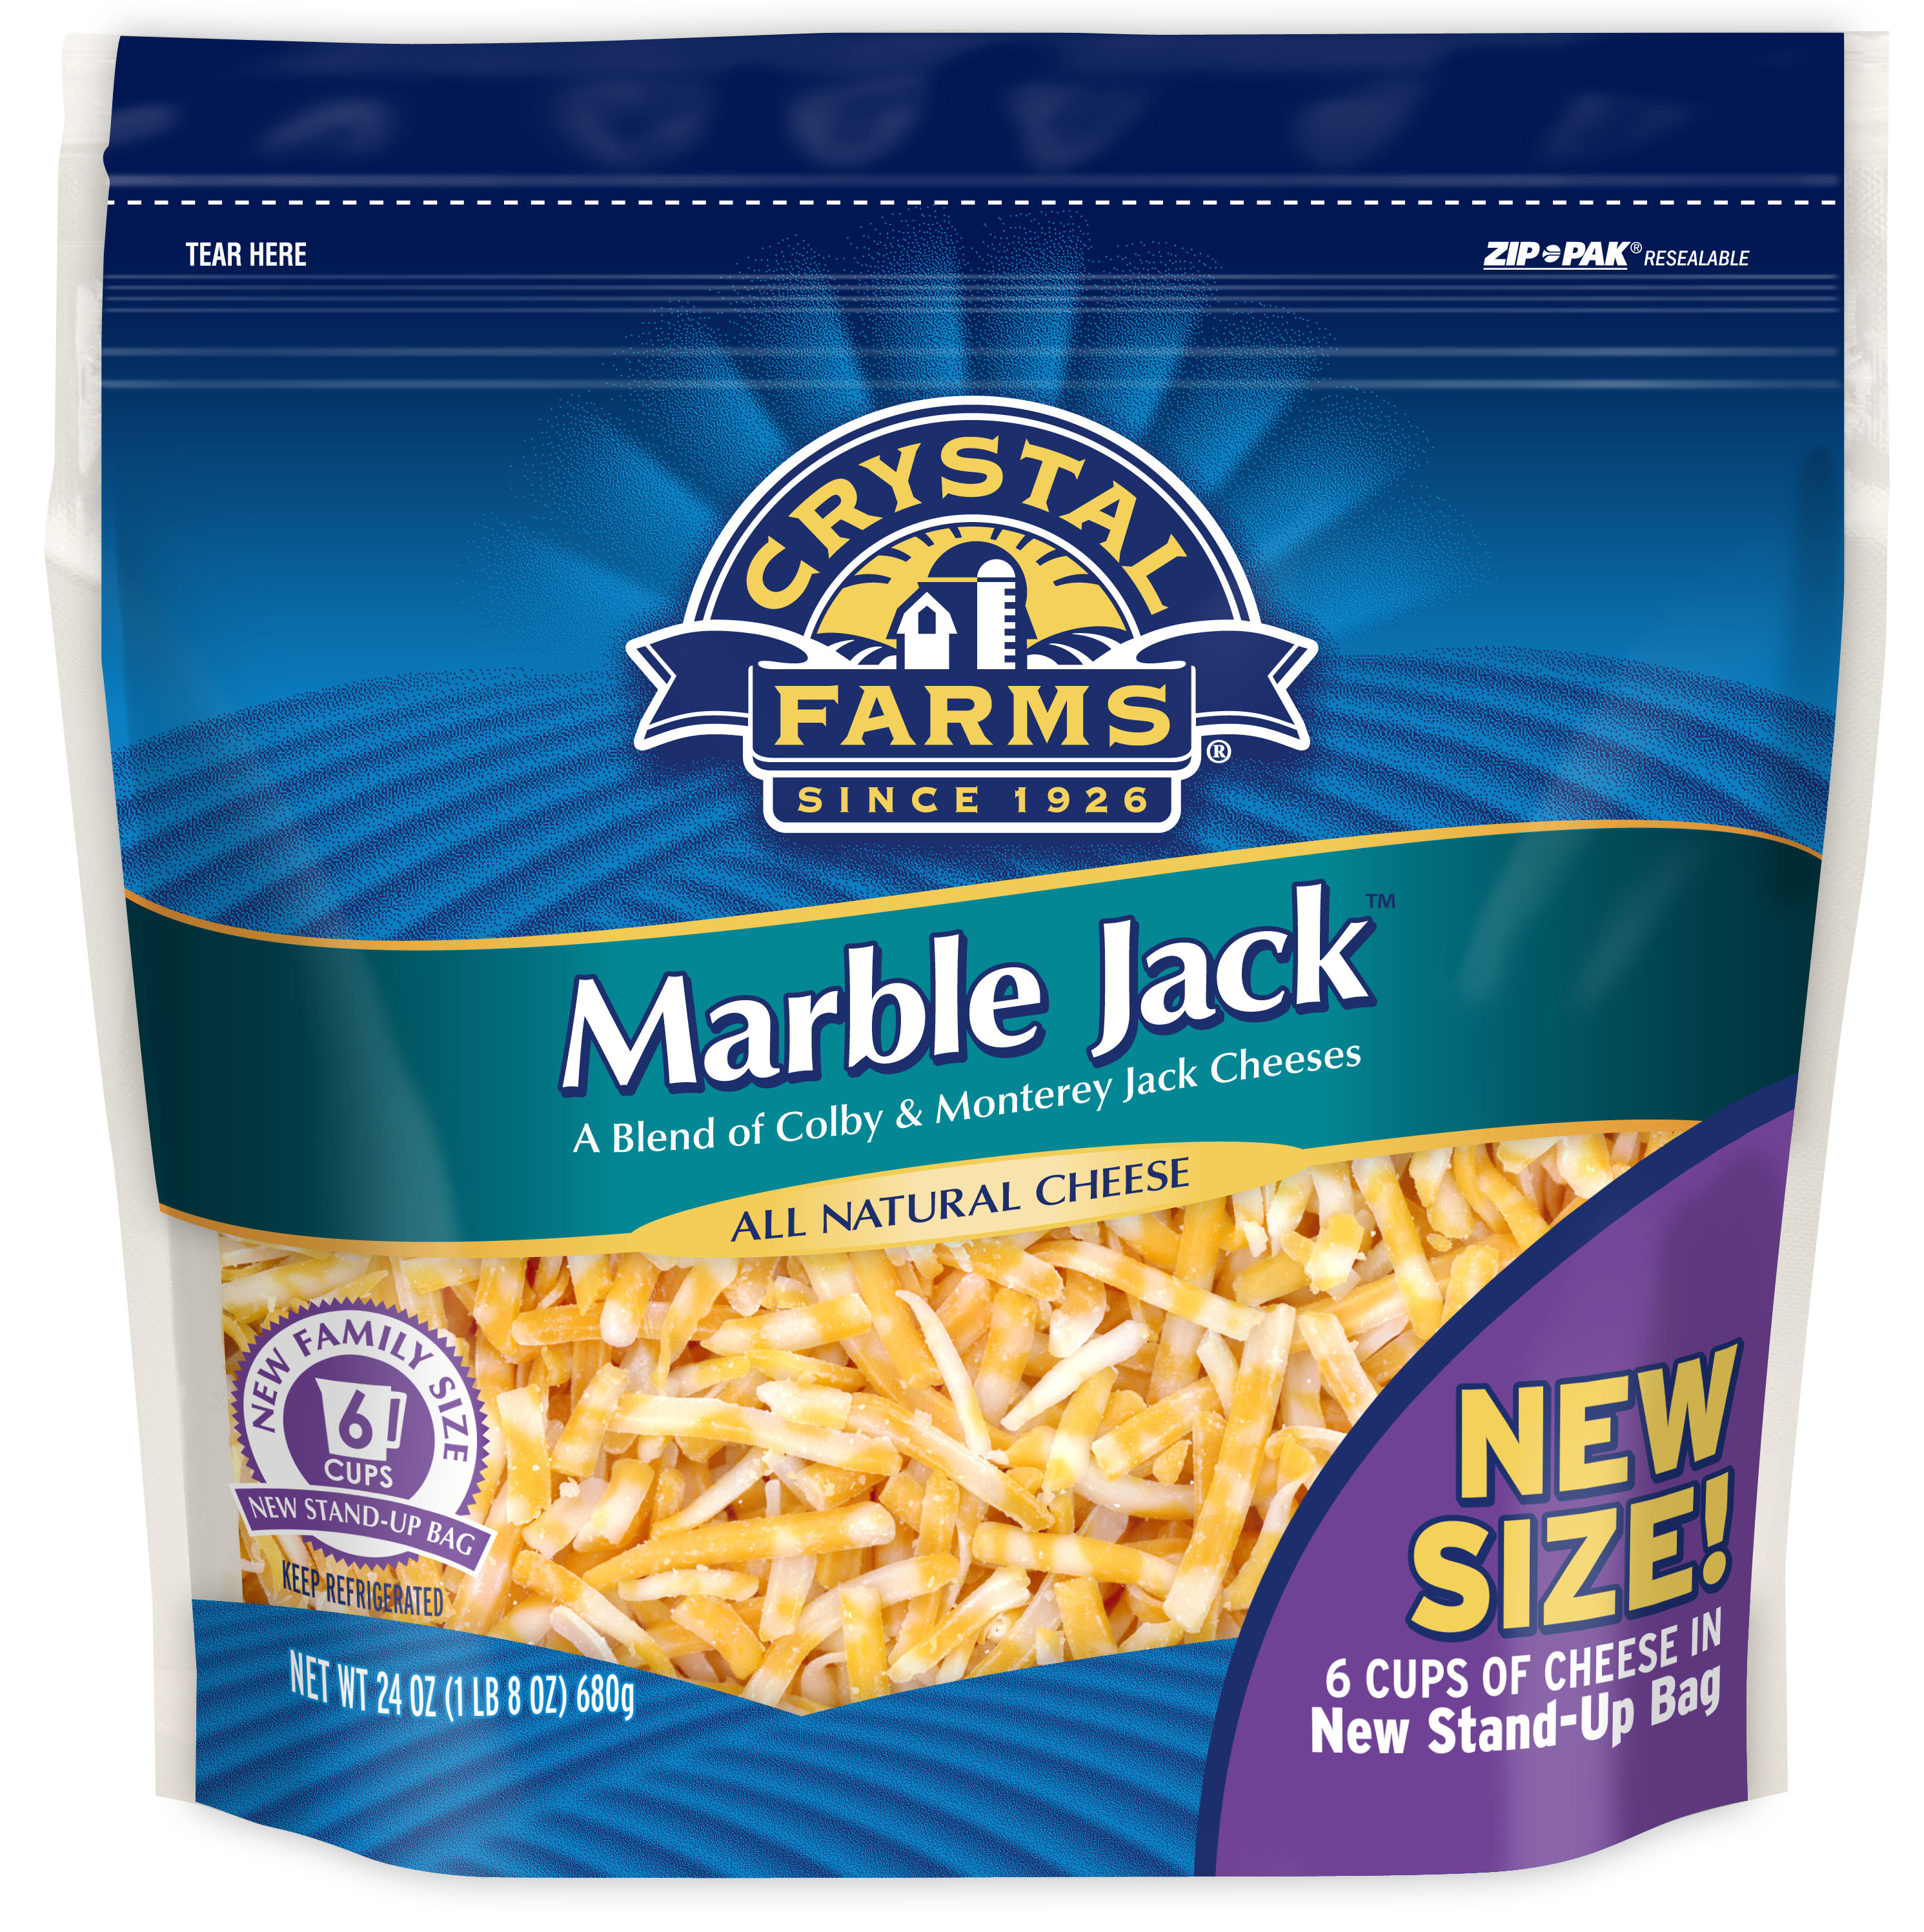 Crystal Farms Marble Jack Shredded Cheese, 24oz